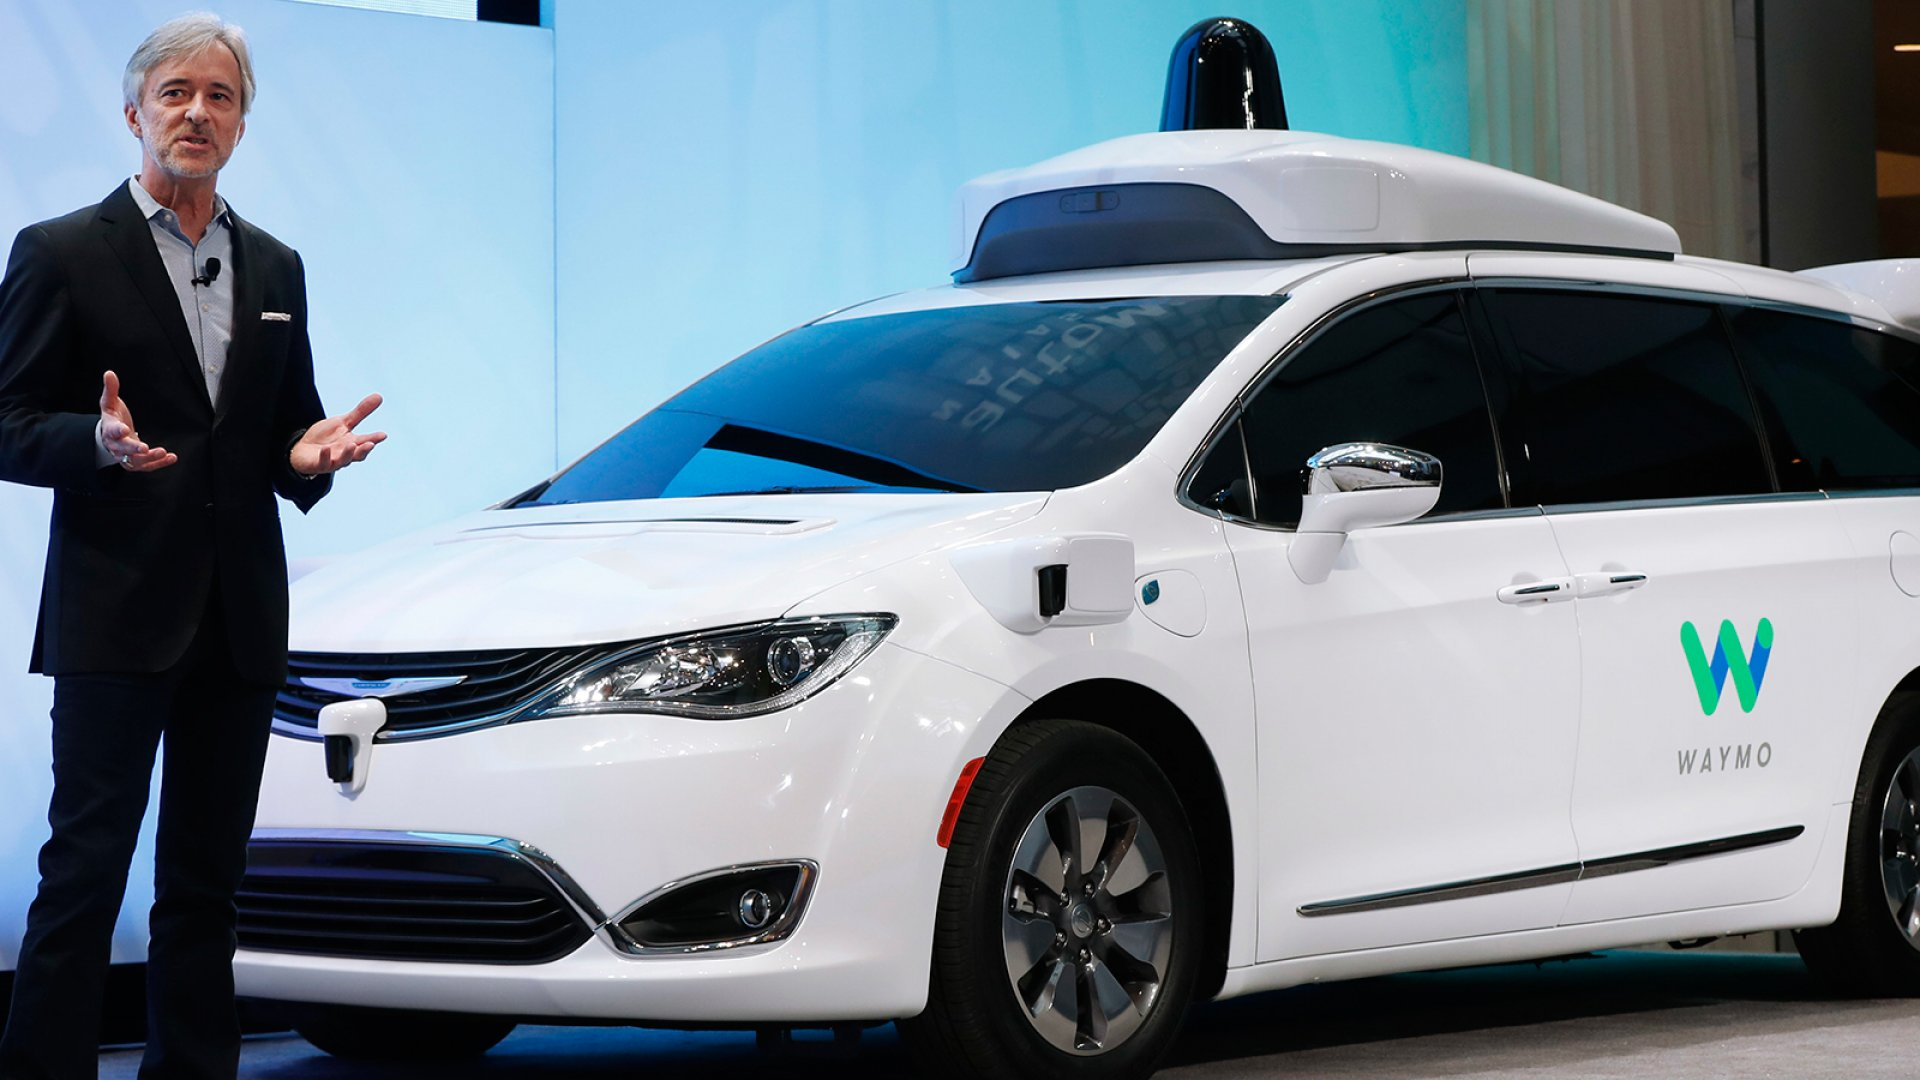 John Krafcik, CEO of Waymo, the autonomous vehicle company created by Google's parent company, Alphabet introduces a Chrysler Pacifica hybrid outfitted with Waymo's own suite of sensors and radar at the North American International Auto Show in Detroit, Sunday, Jan. 8, 2017.